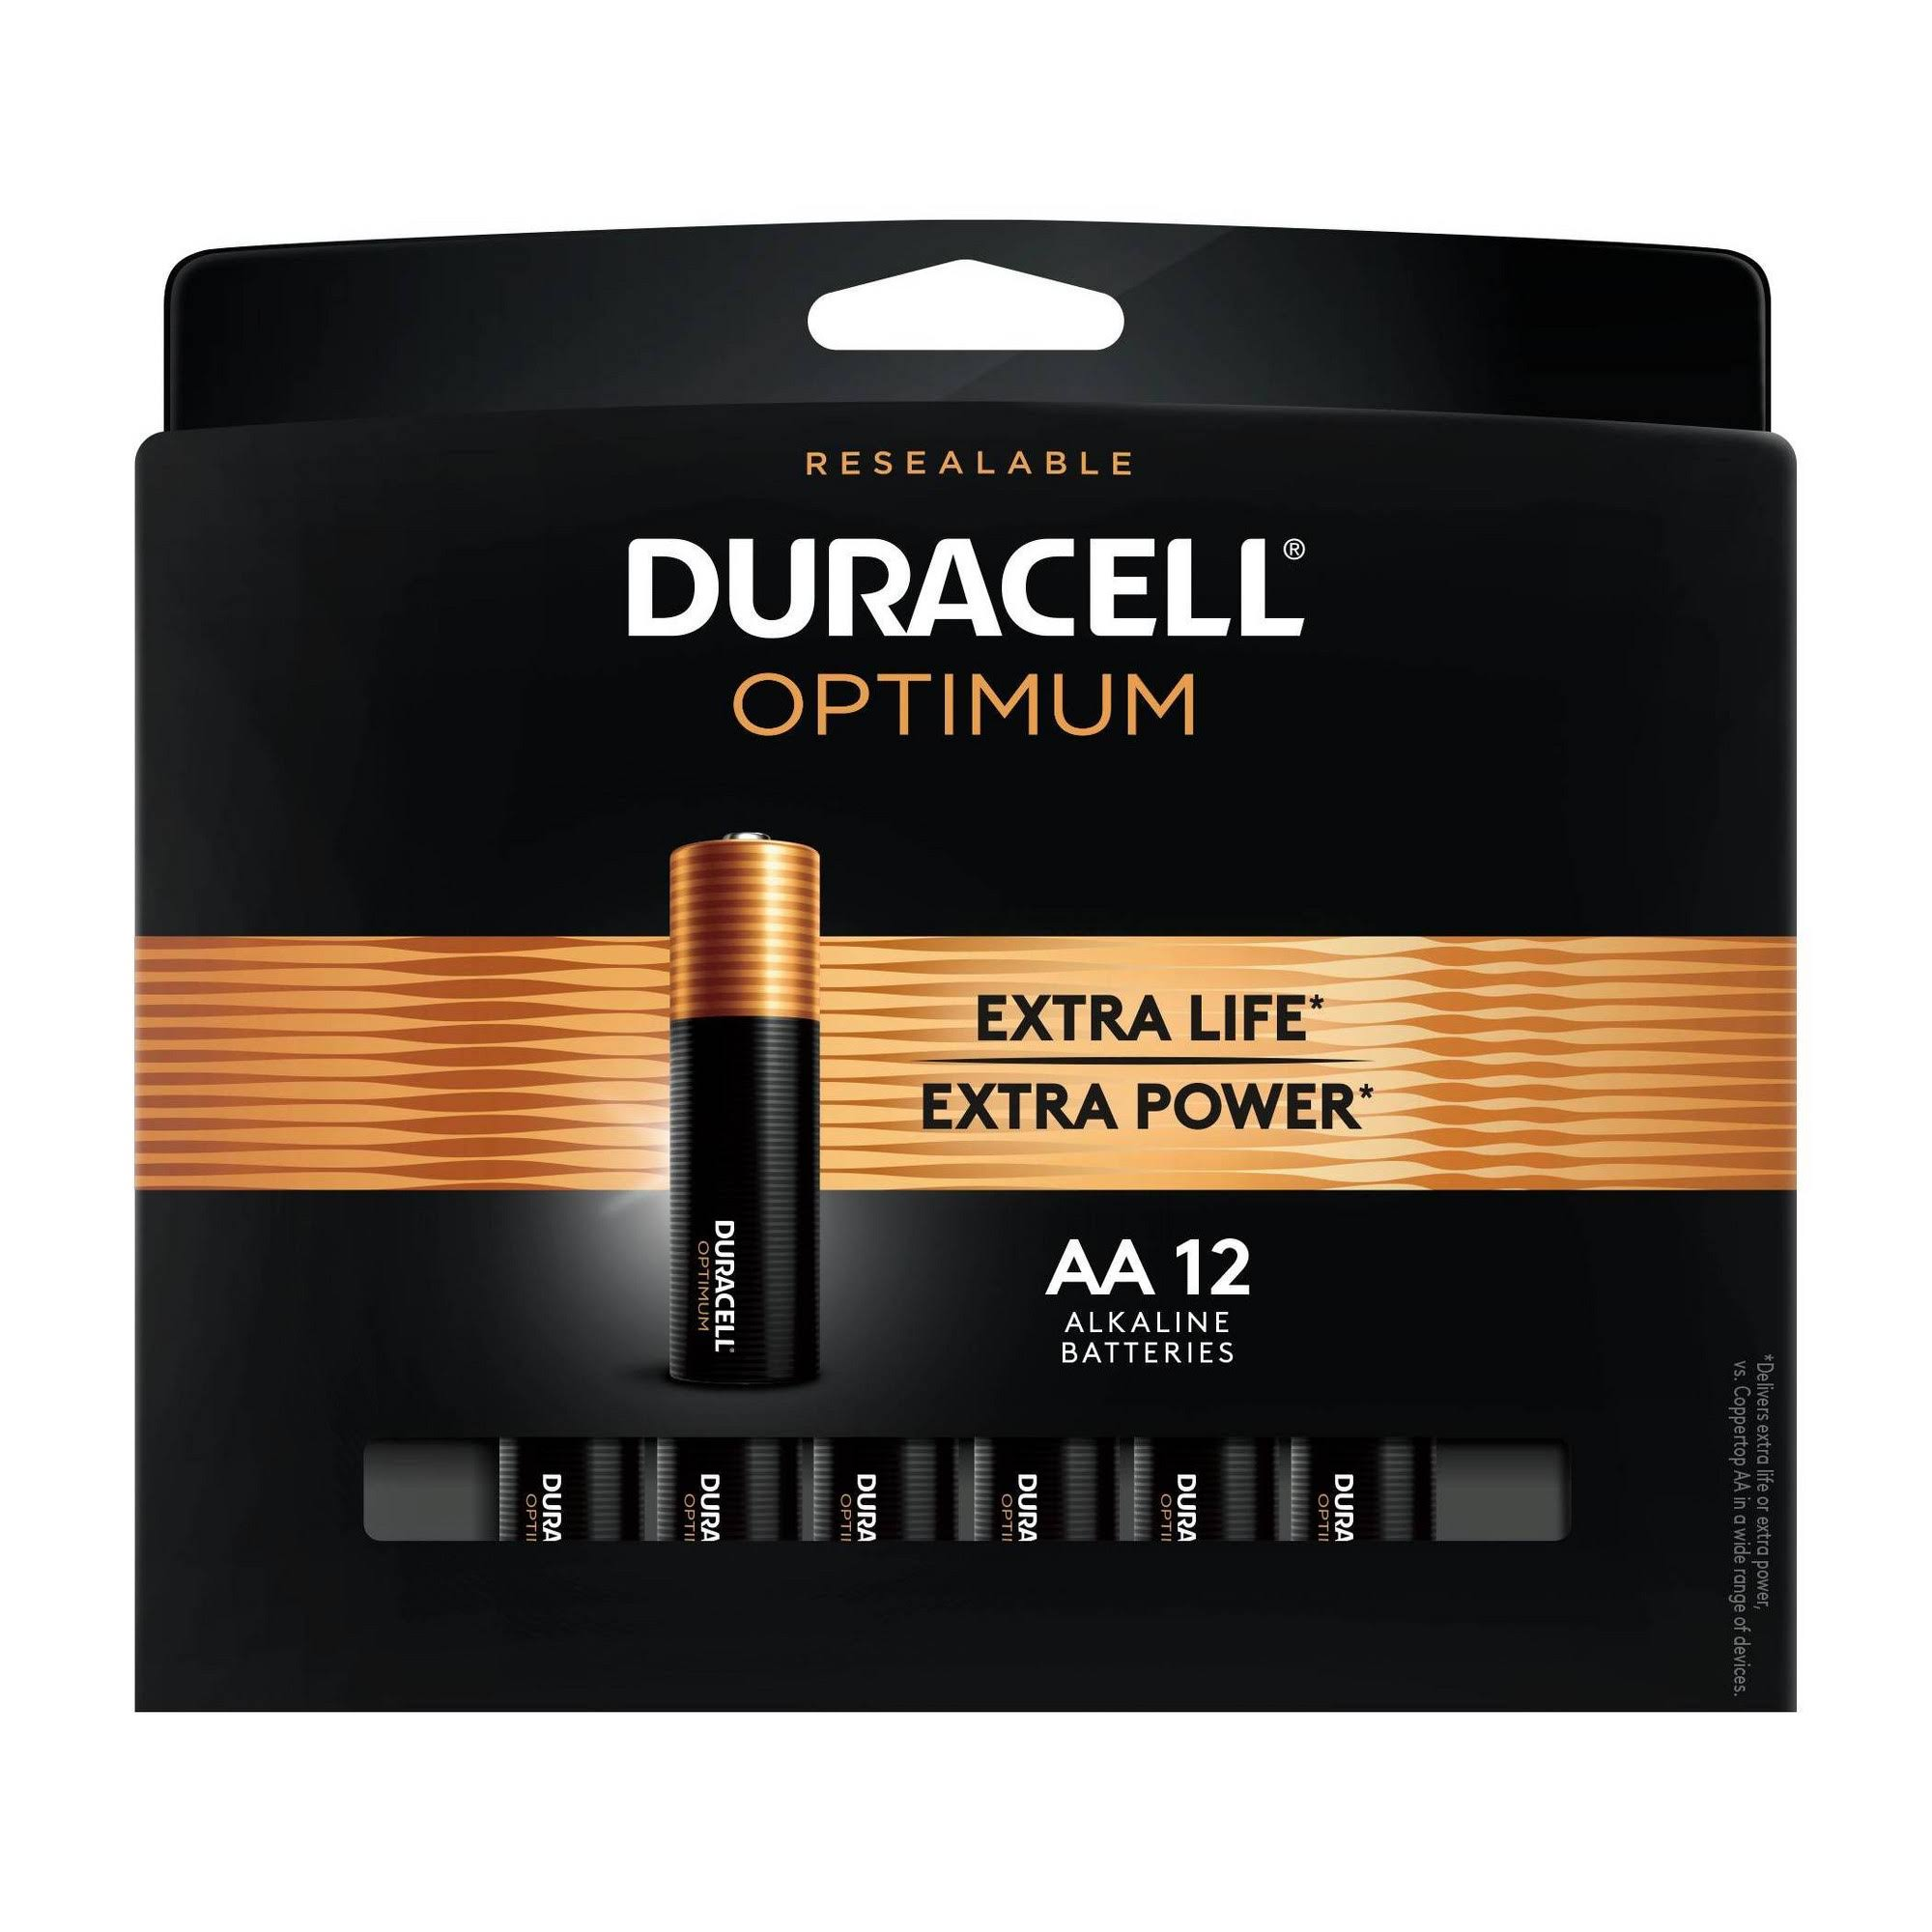 Duracell Optimum AA Alkaline Battery - 12 pack